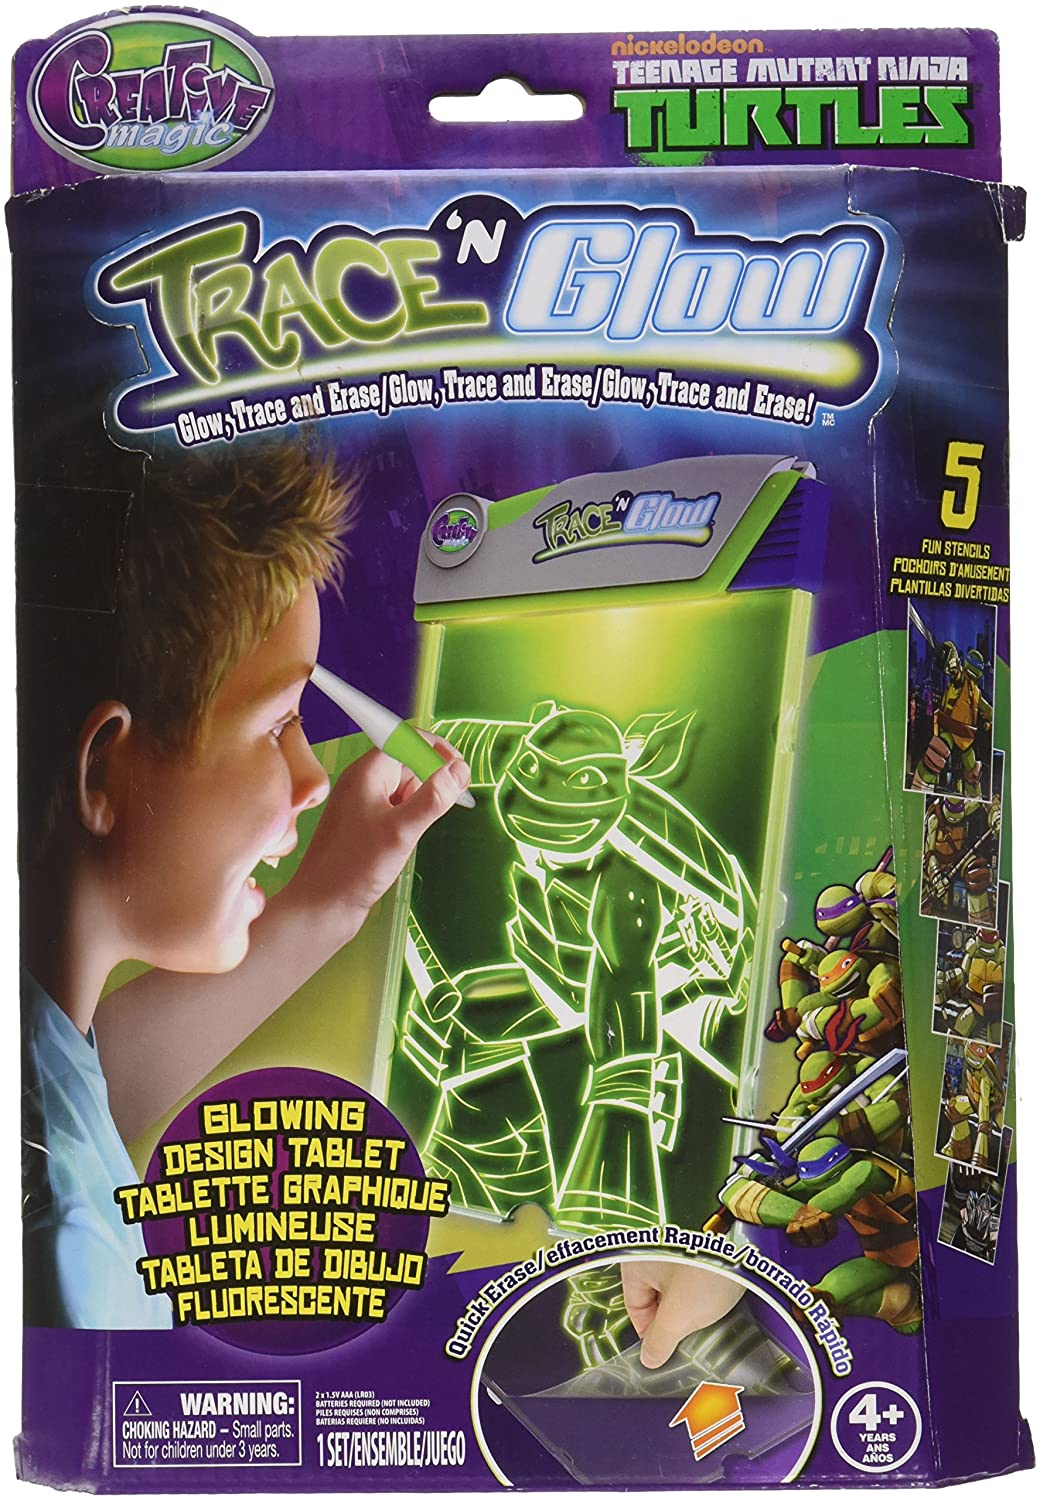 Amazon.com: Tech4Kids TMNT Trace N Glow Toy: Toys & Games